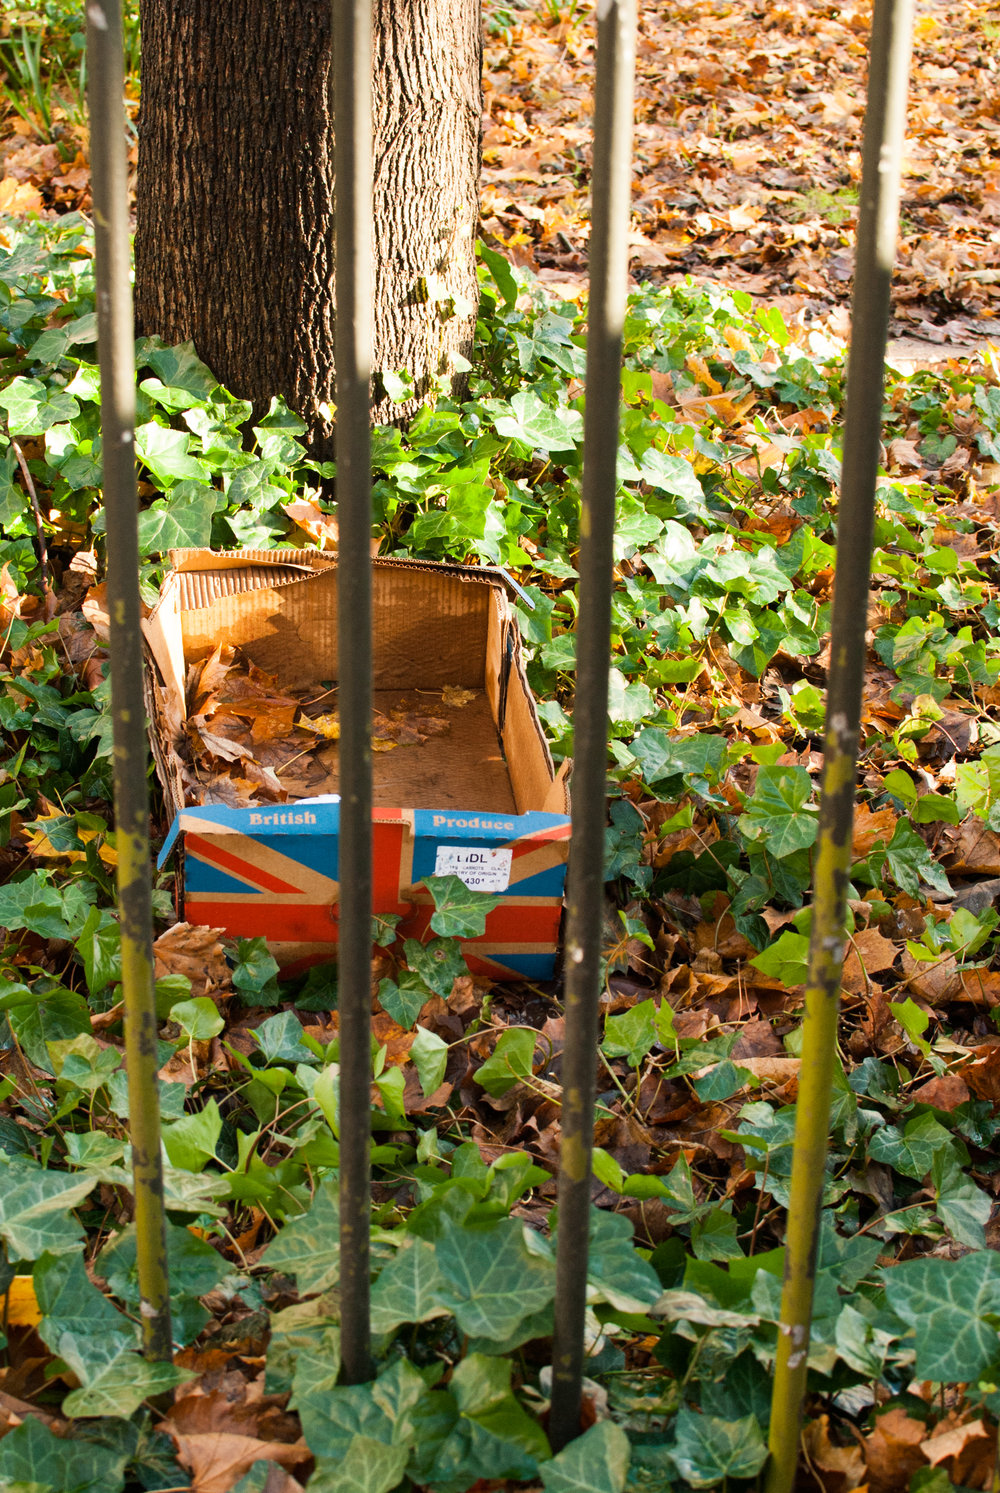 Georgina_cook_Heygate_estate_british_produce_box.jpg